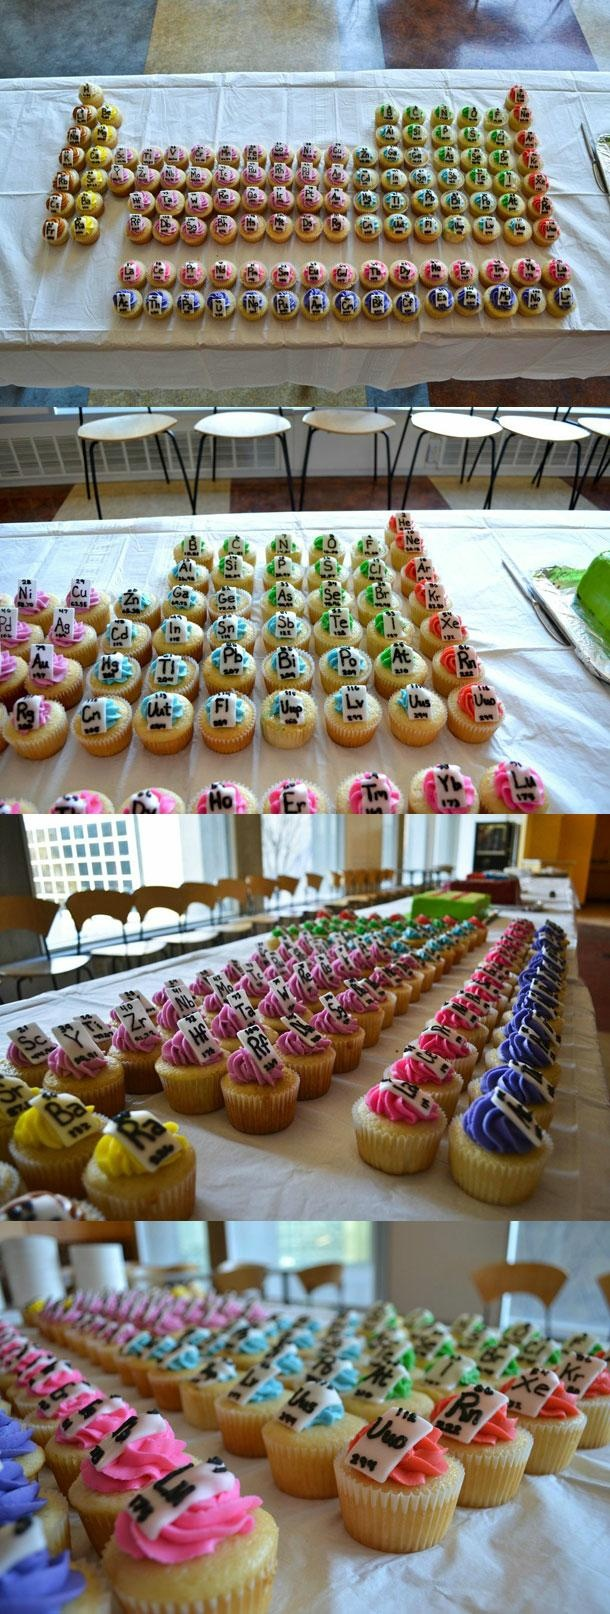 47 best periodic table crazy images on pinterest periodic table periodic table of elements in cupcake form my life is complete gamestrikefo Gallery